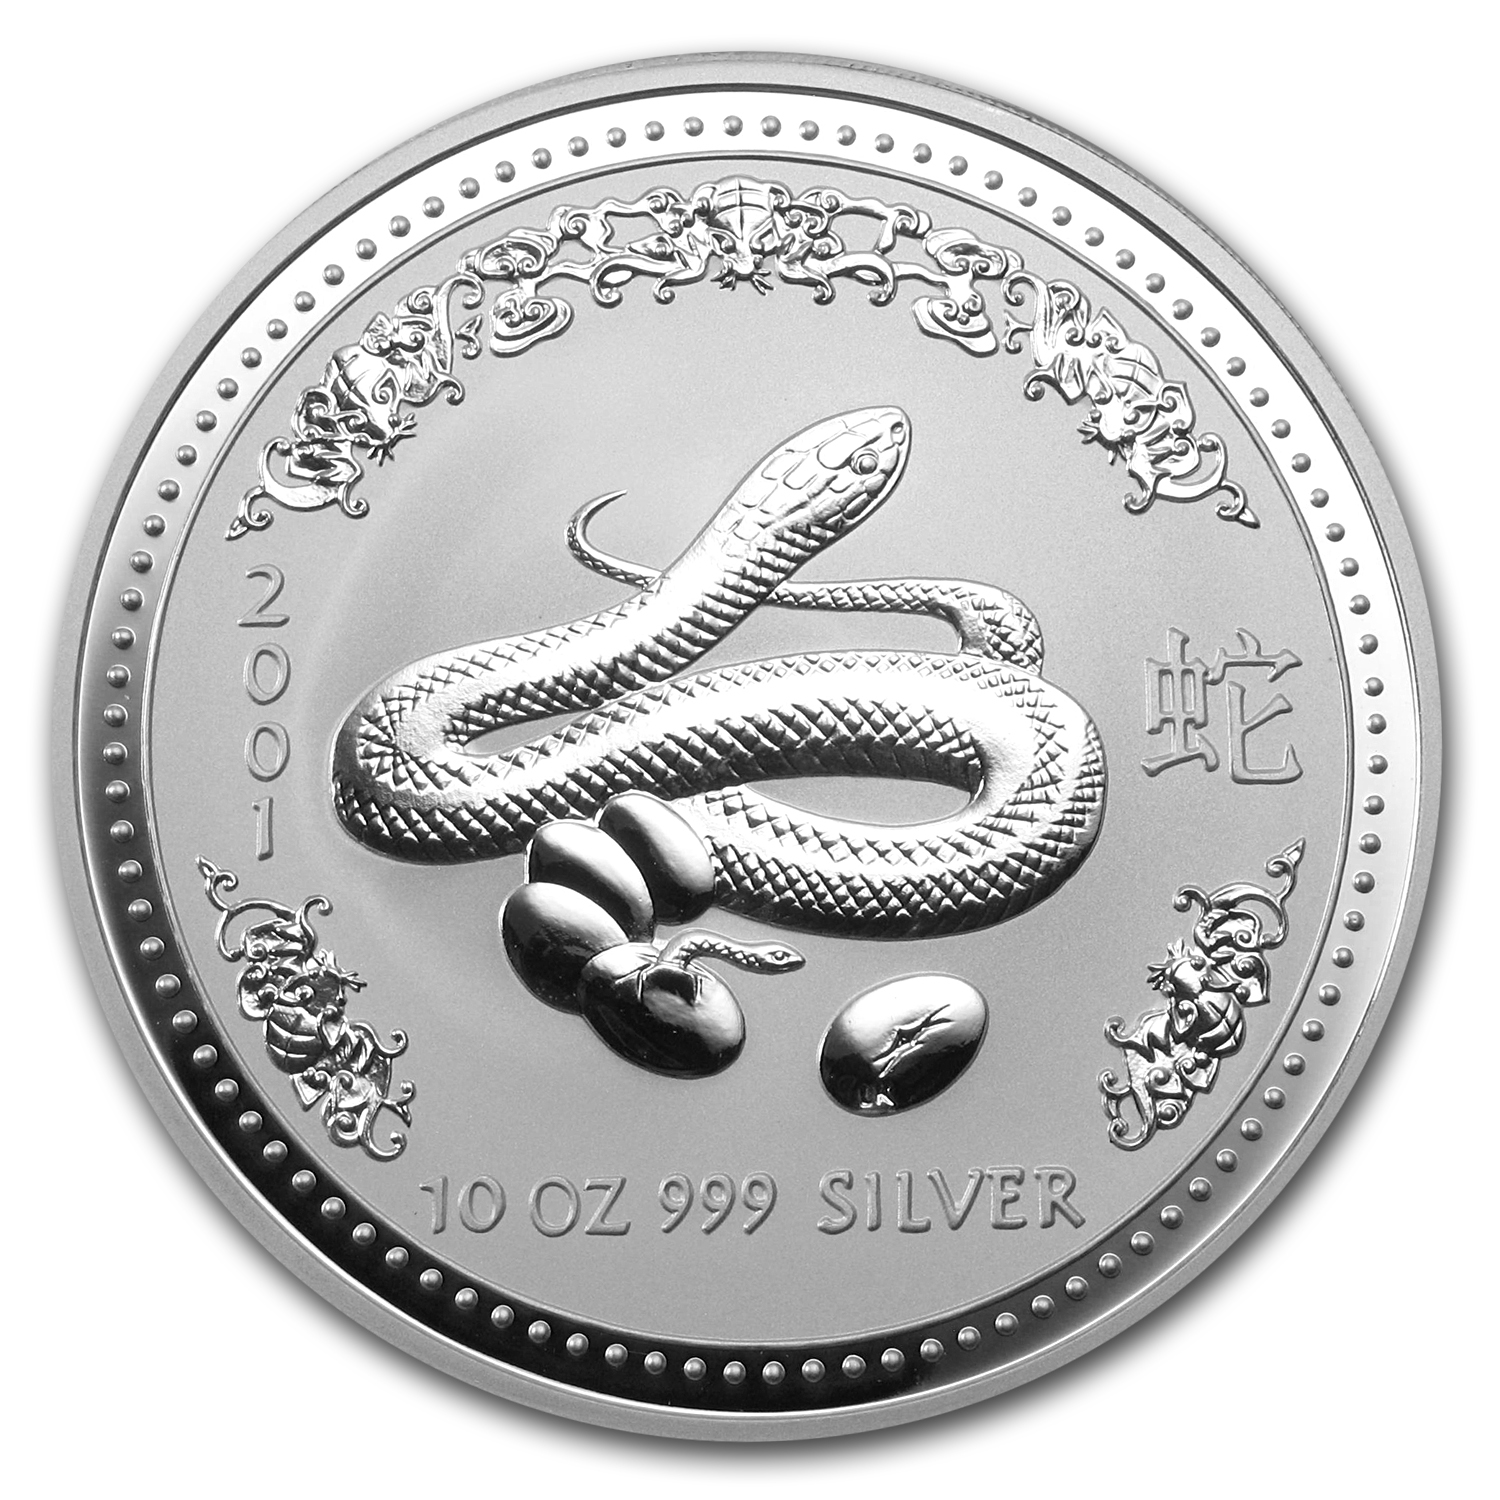 2001 10 oz Silver Australian Year of the Snake BU